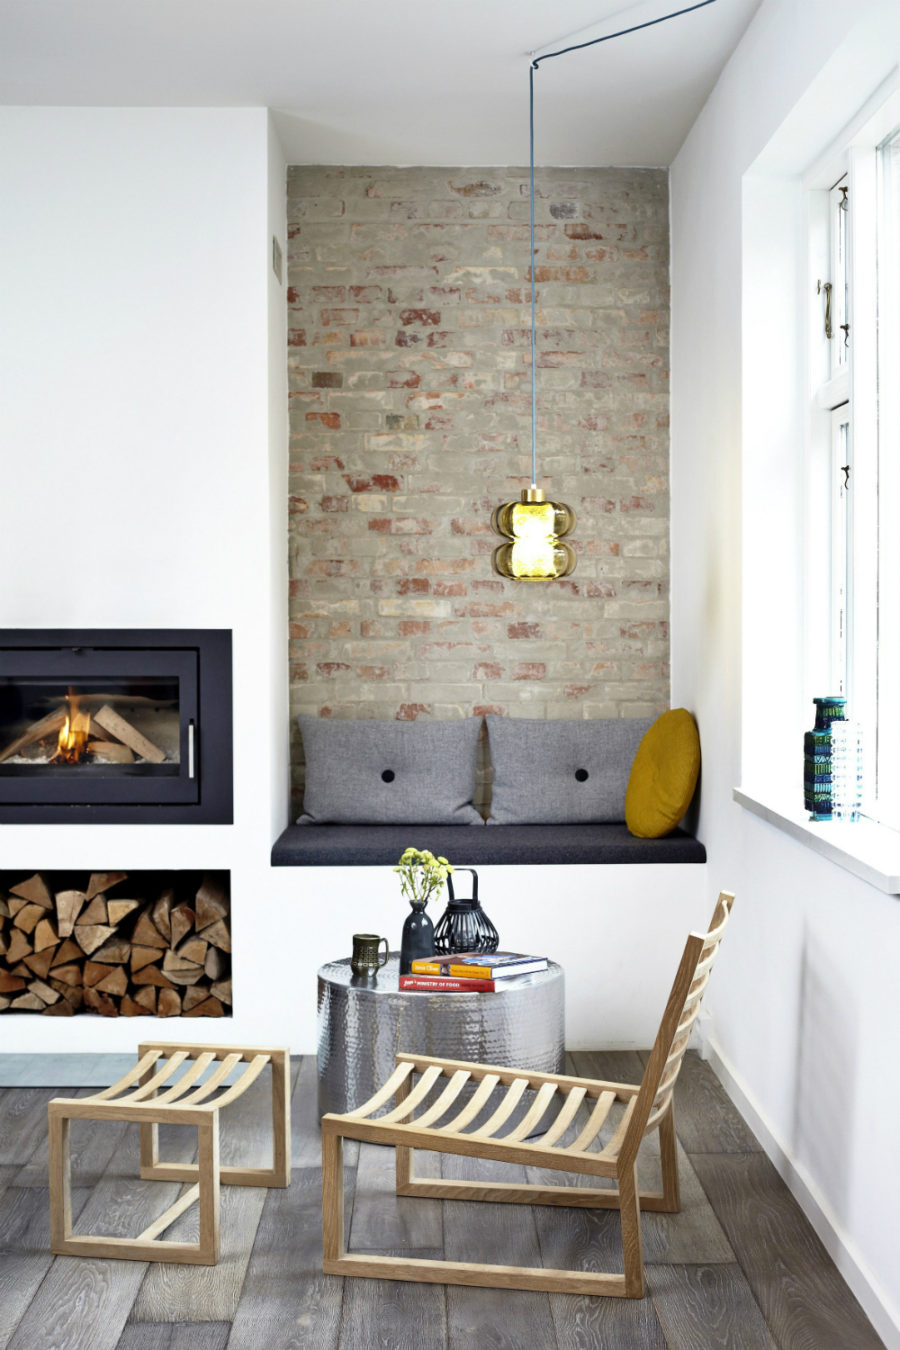 In-built window fireplace seat